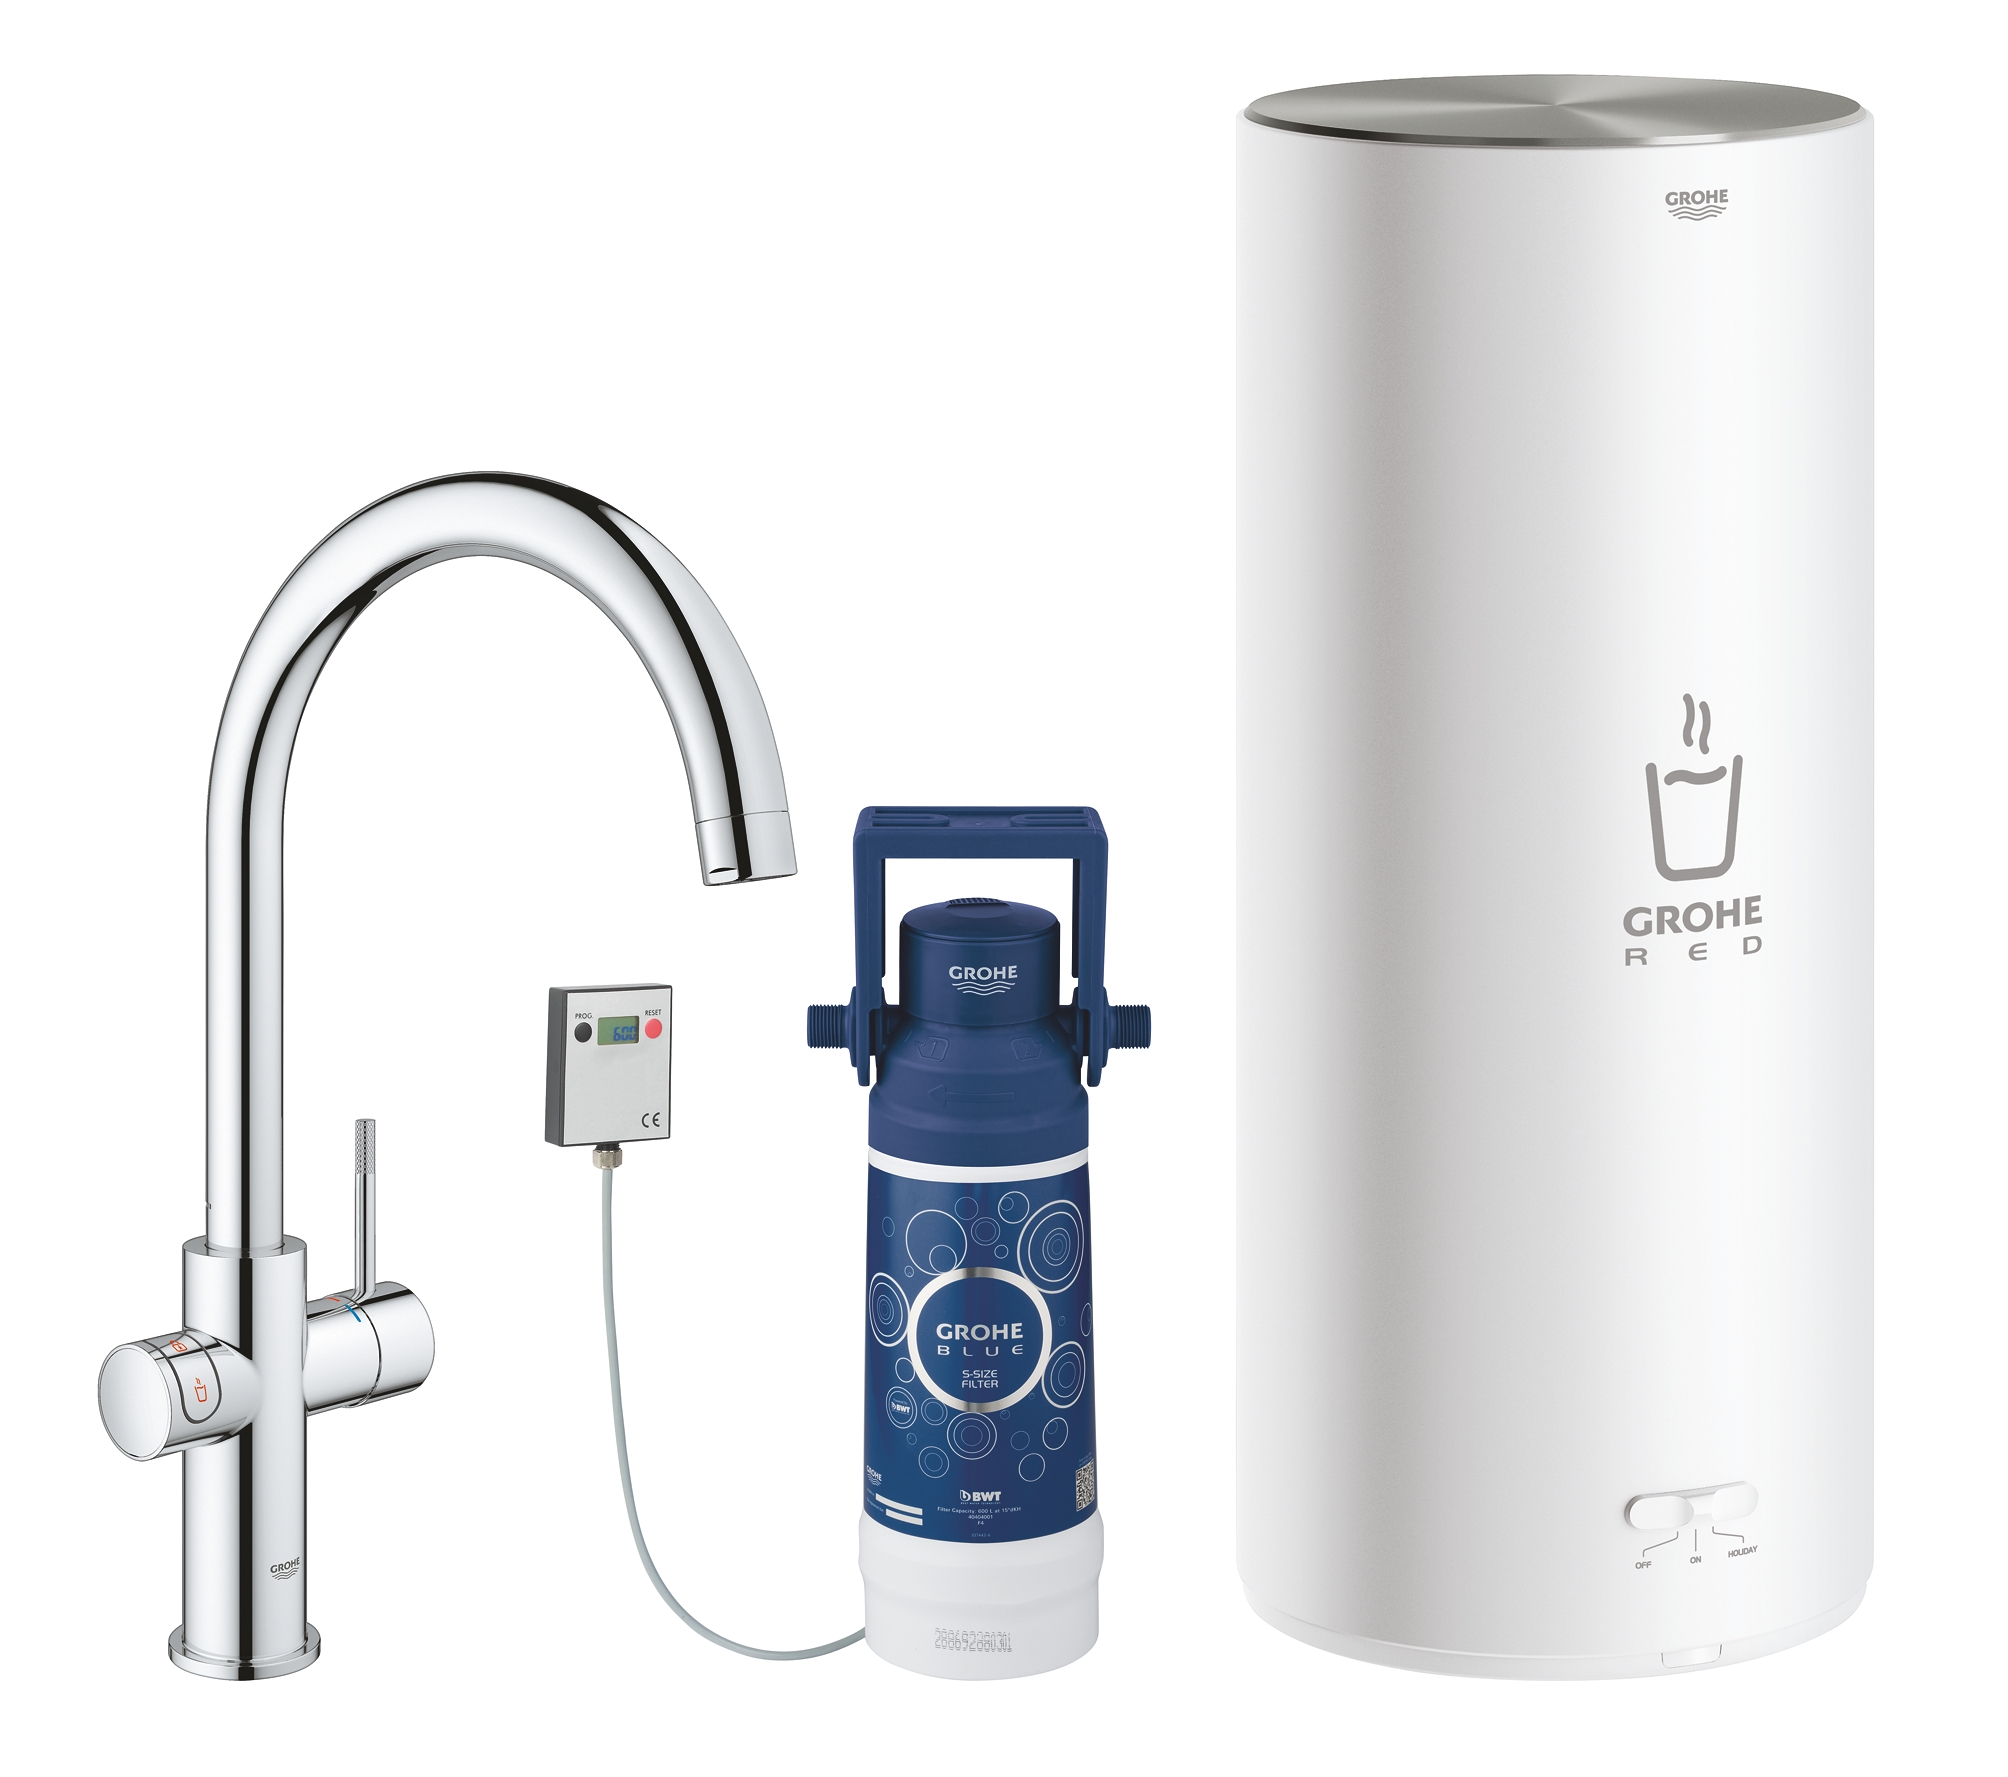 Комплект со смесителем для кухни GROHE Red Duo New, бойлер L-size, хром (30079001) фото